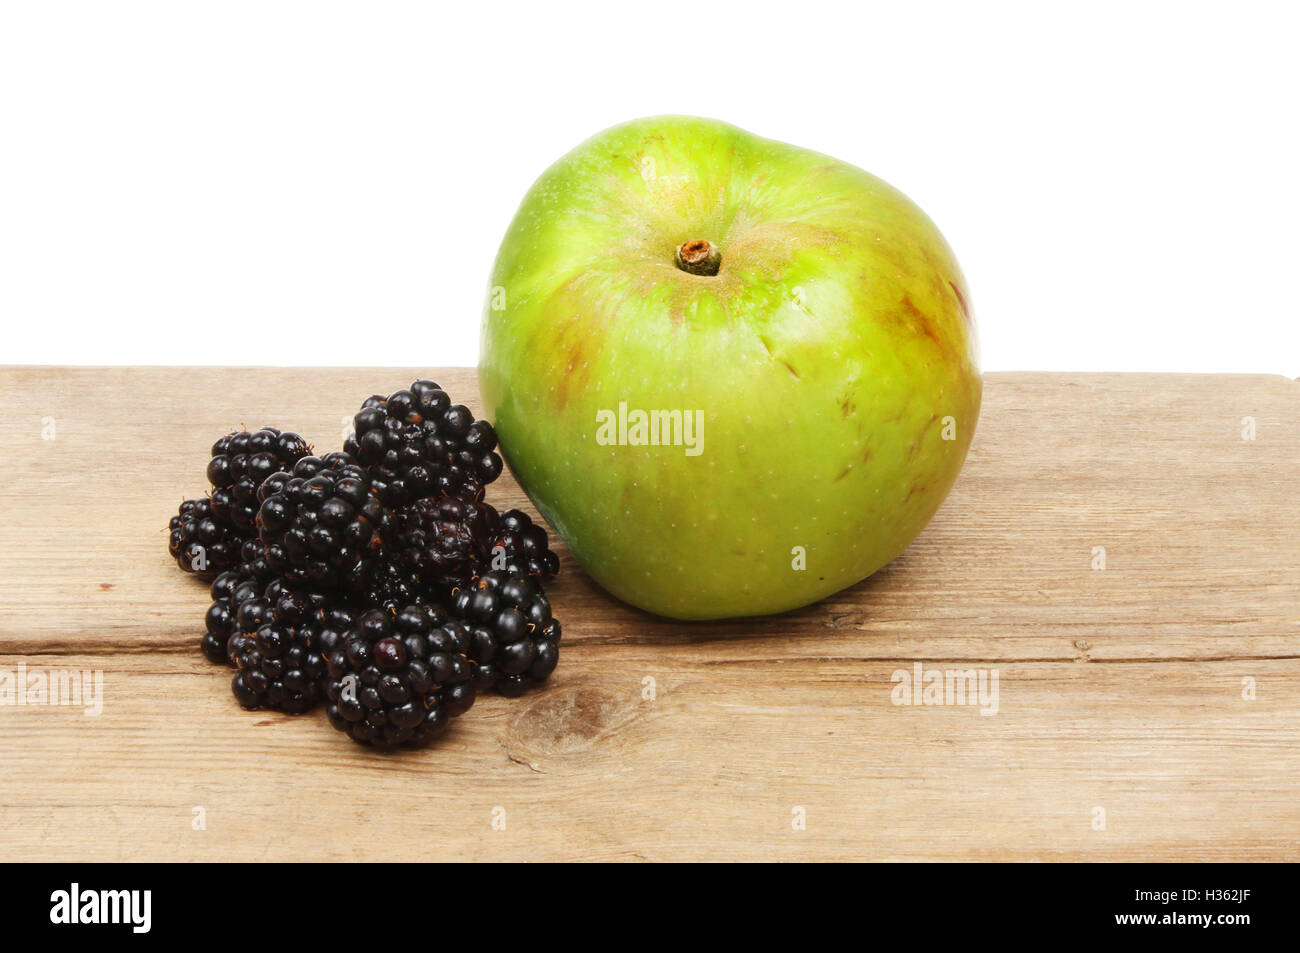 Blackberries and a Bramley cooking apple on rustic wood against a white background - Stock Image